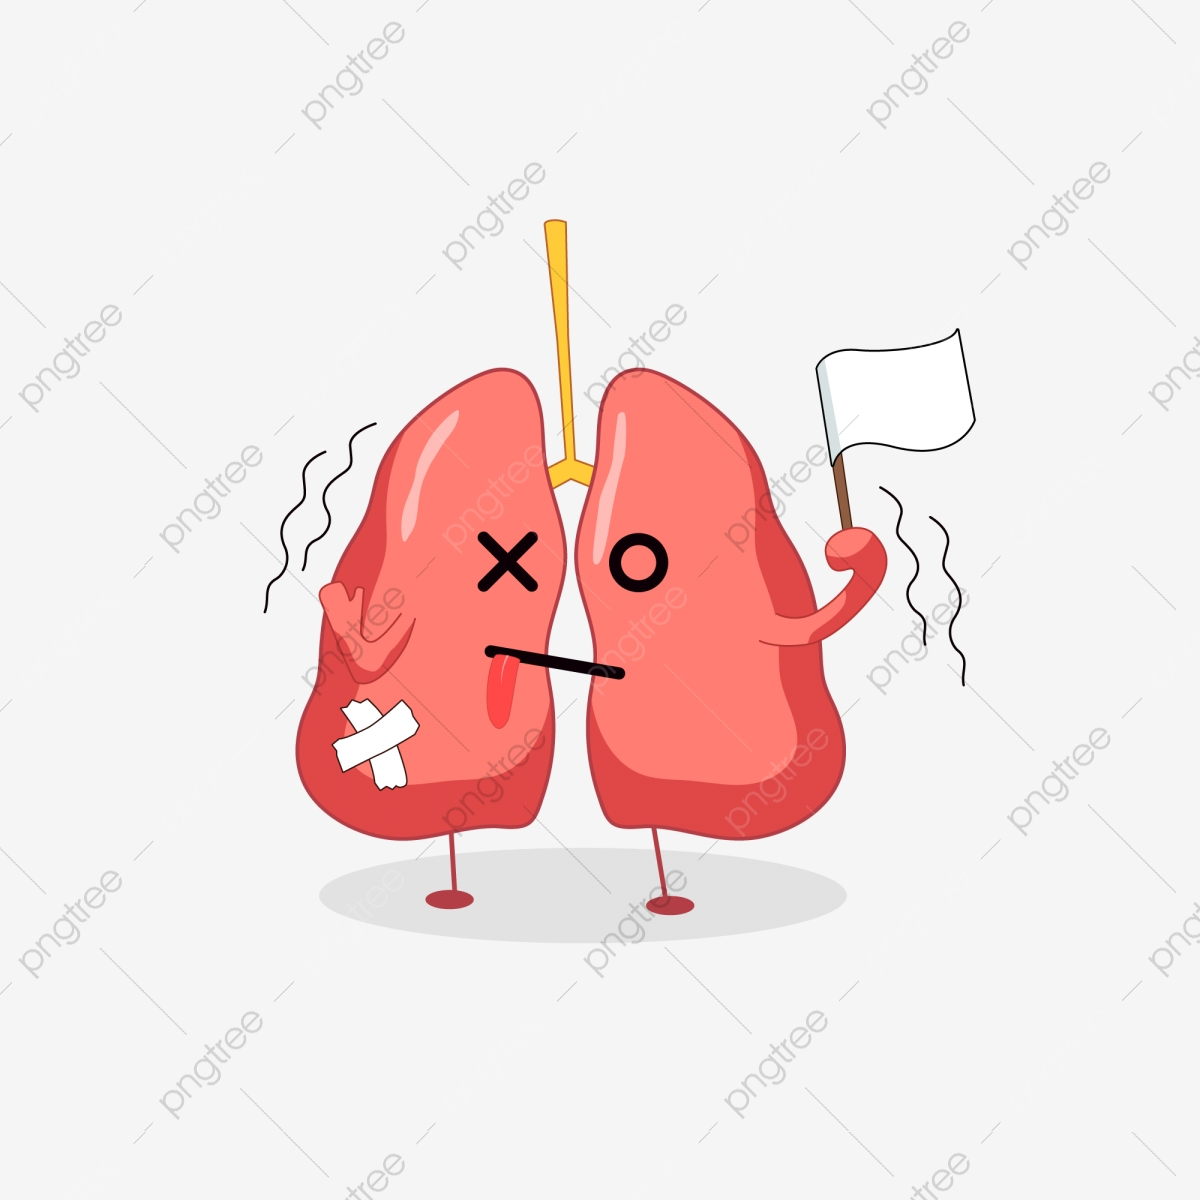 Lungs clipart cartoon. Tuberculosis prevention organ day